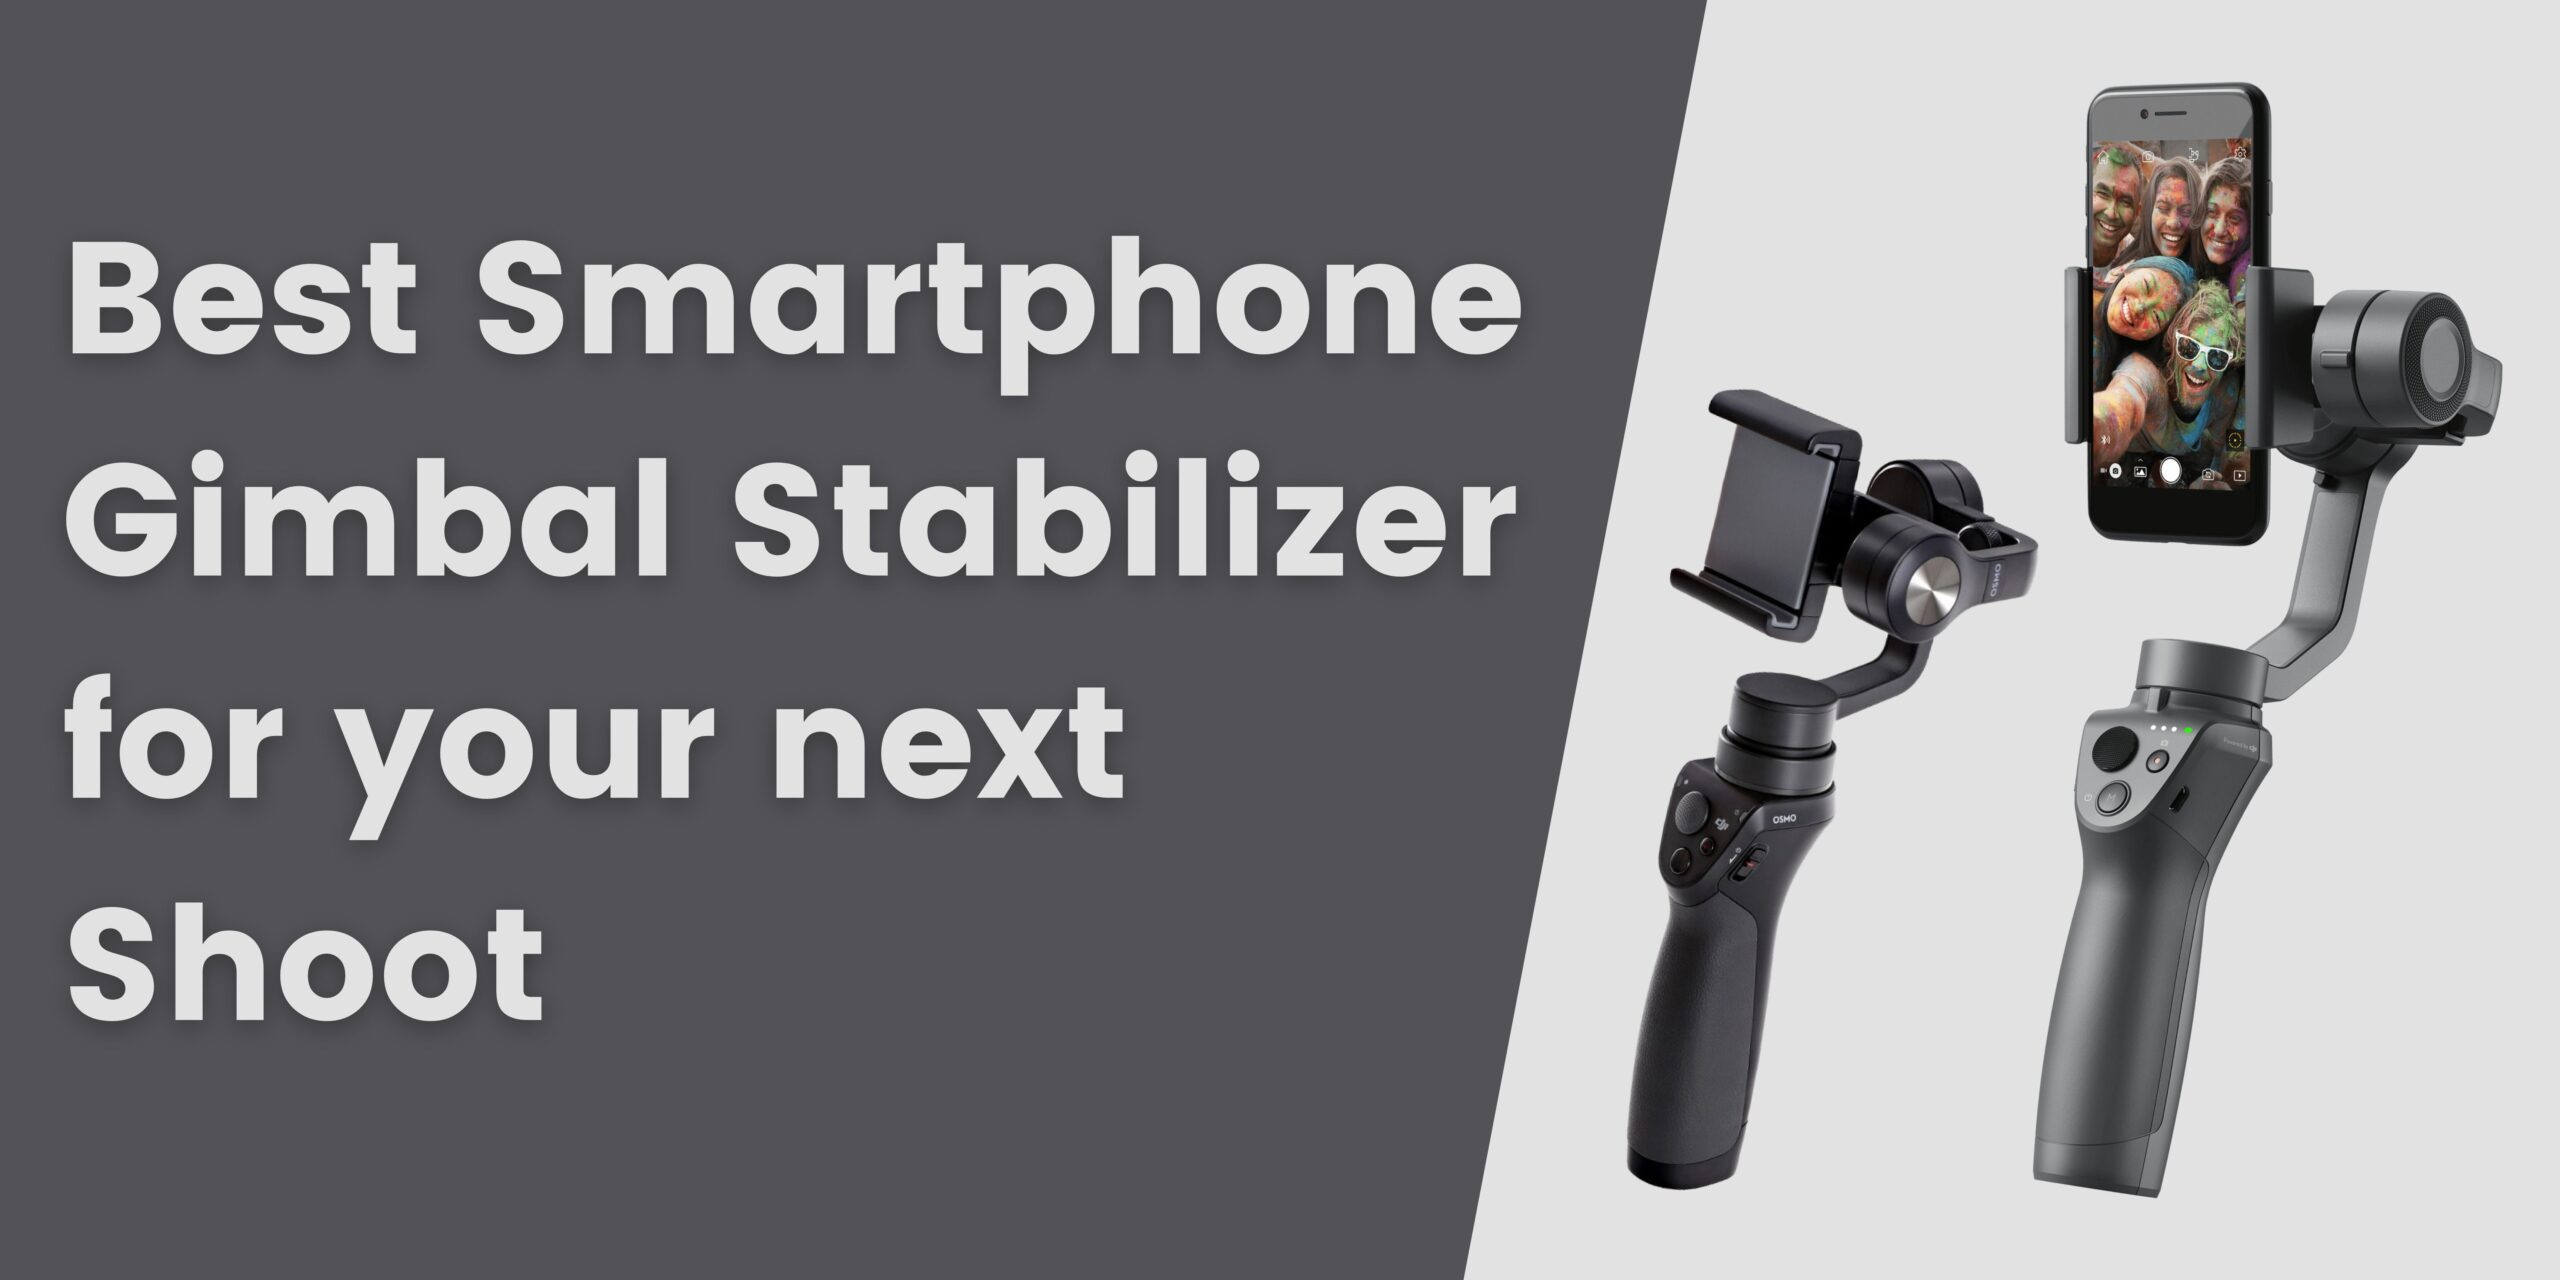 3 Best Smartphone Gimbal Stabilizer for your next Shoot